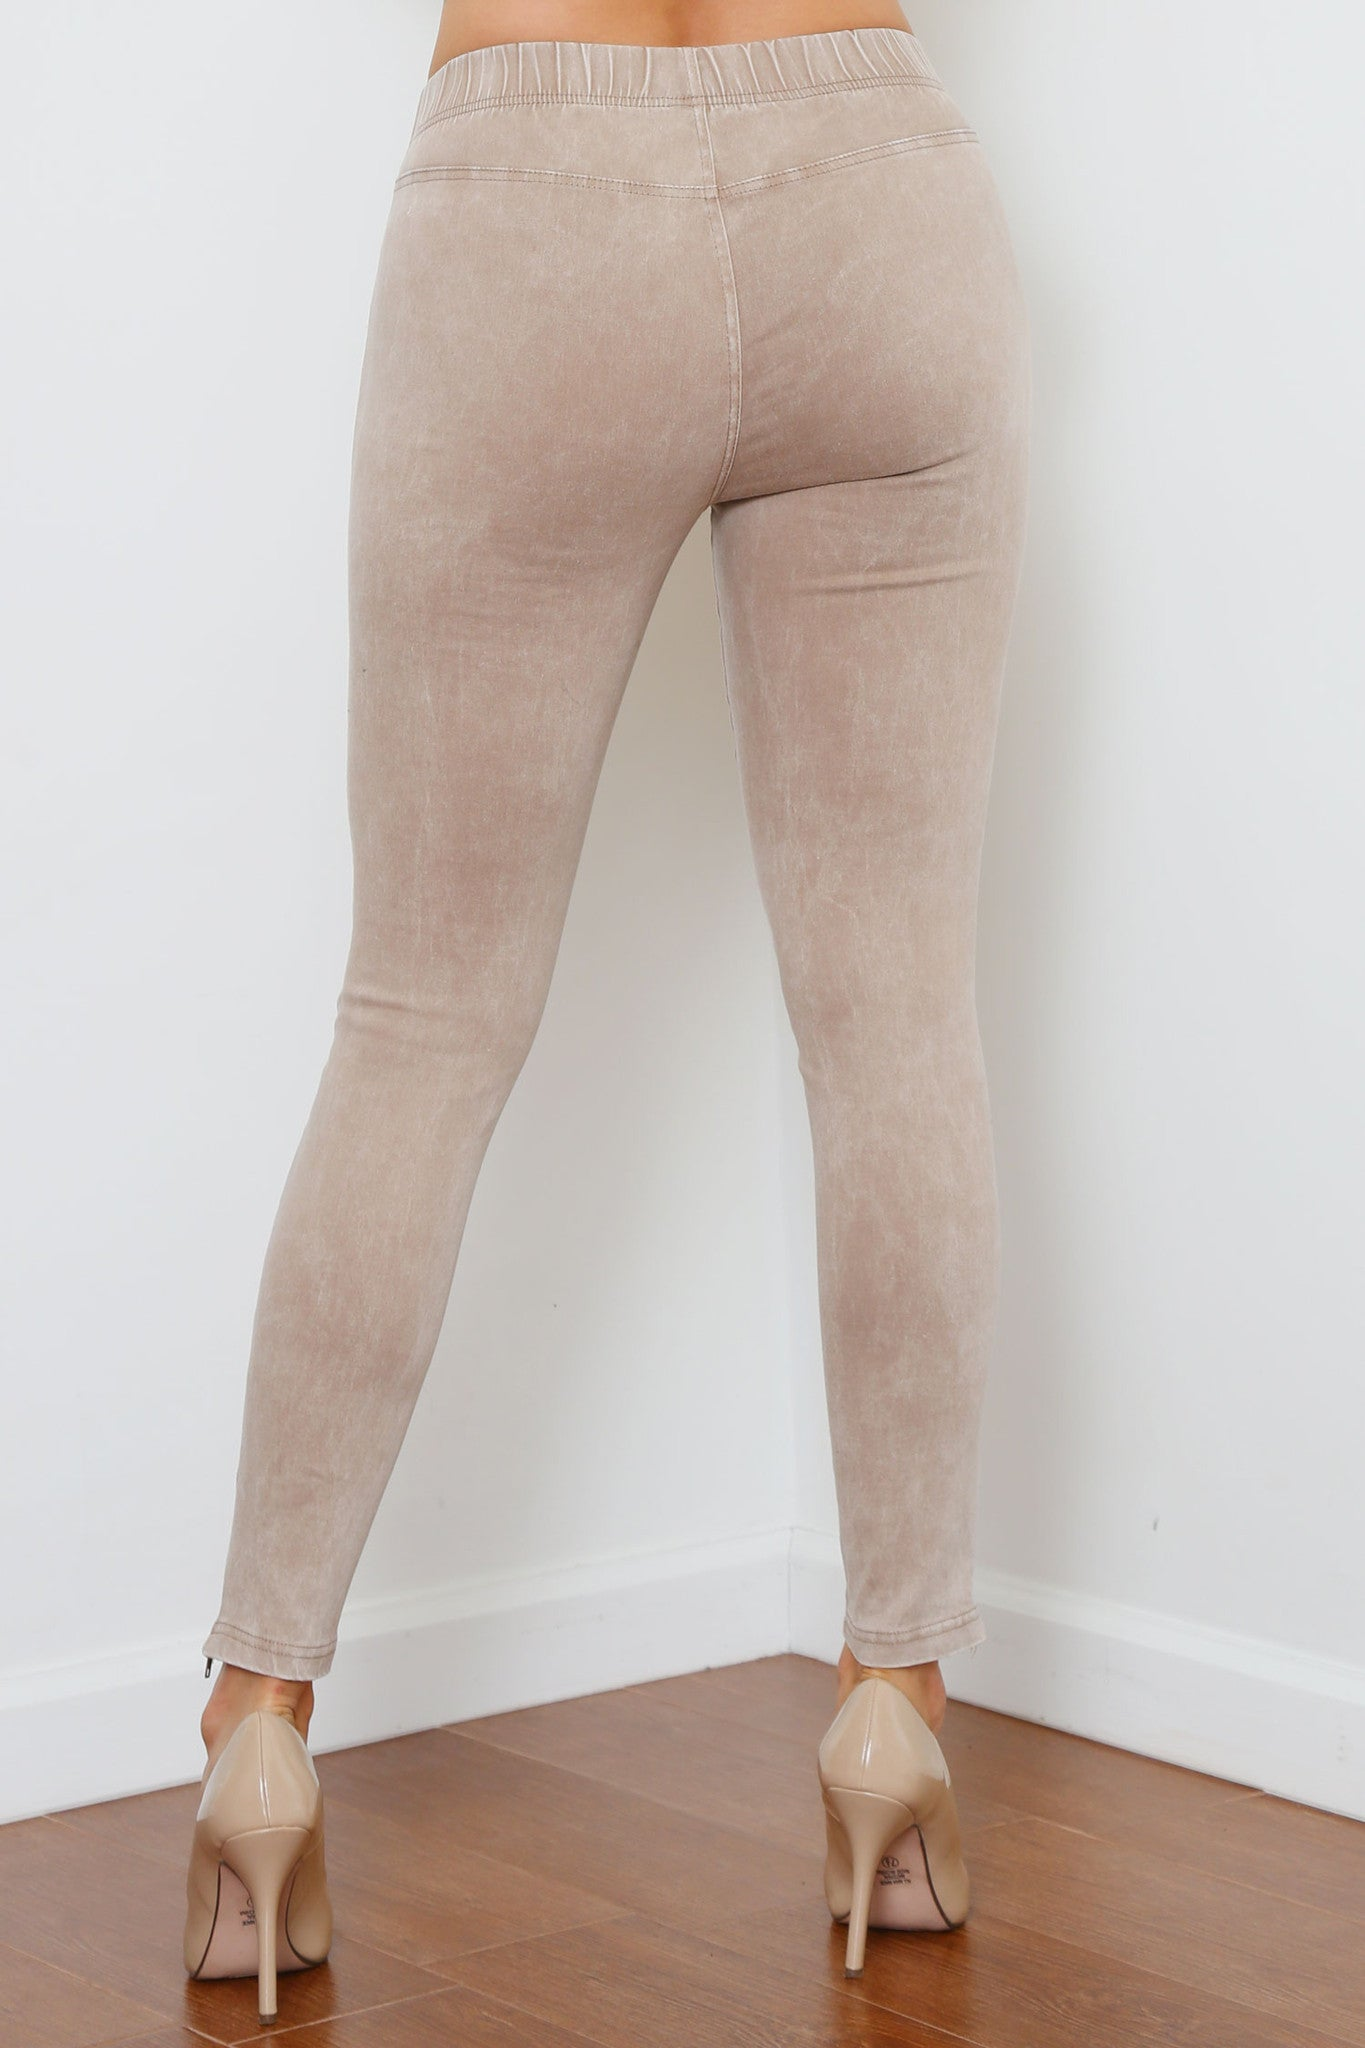 JADE LEGGINGS - Glam Envy - 3